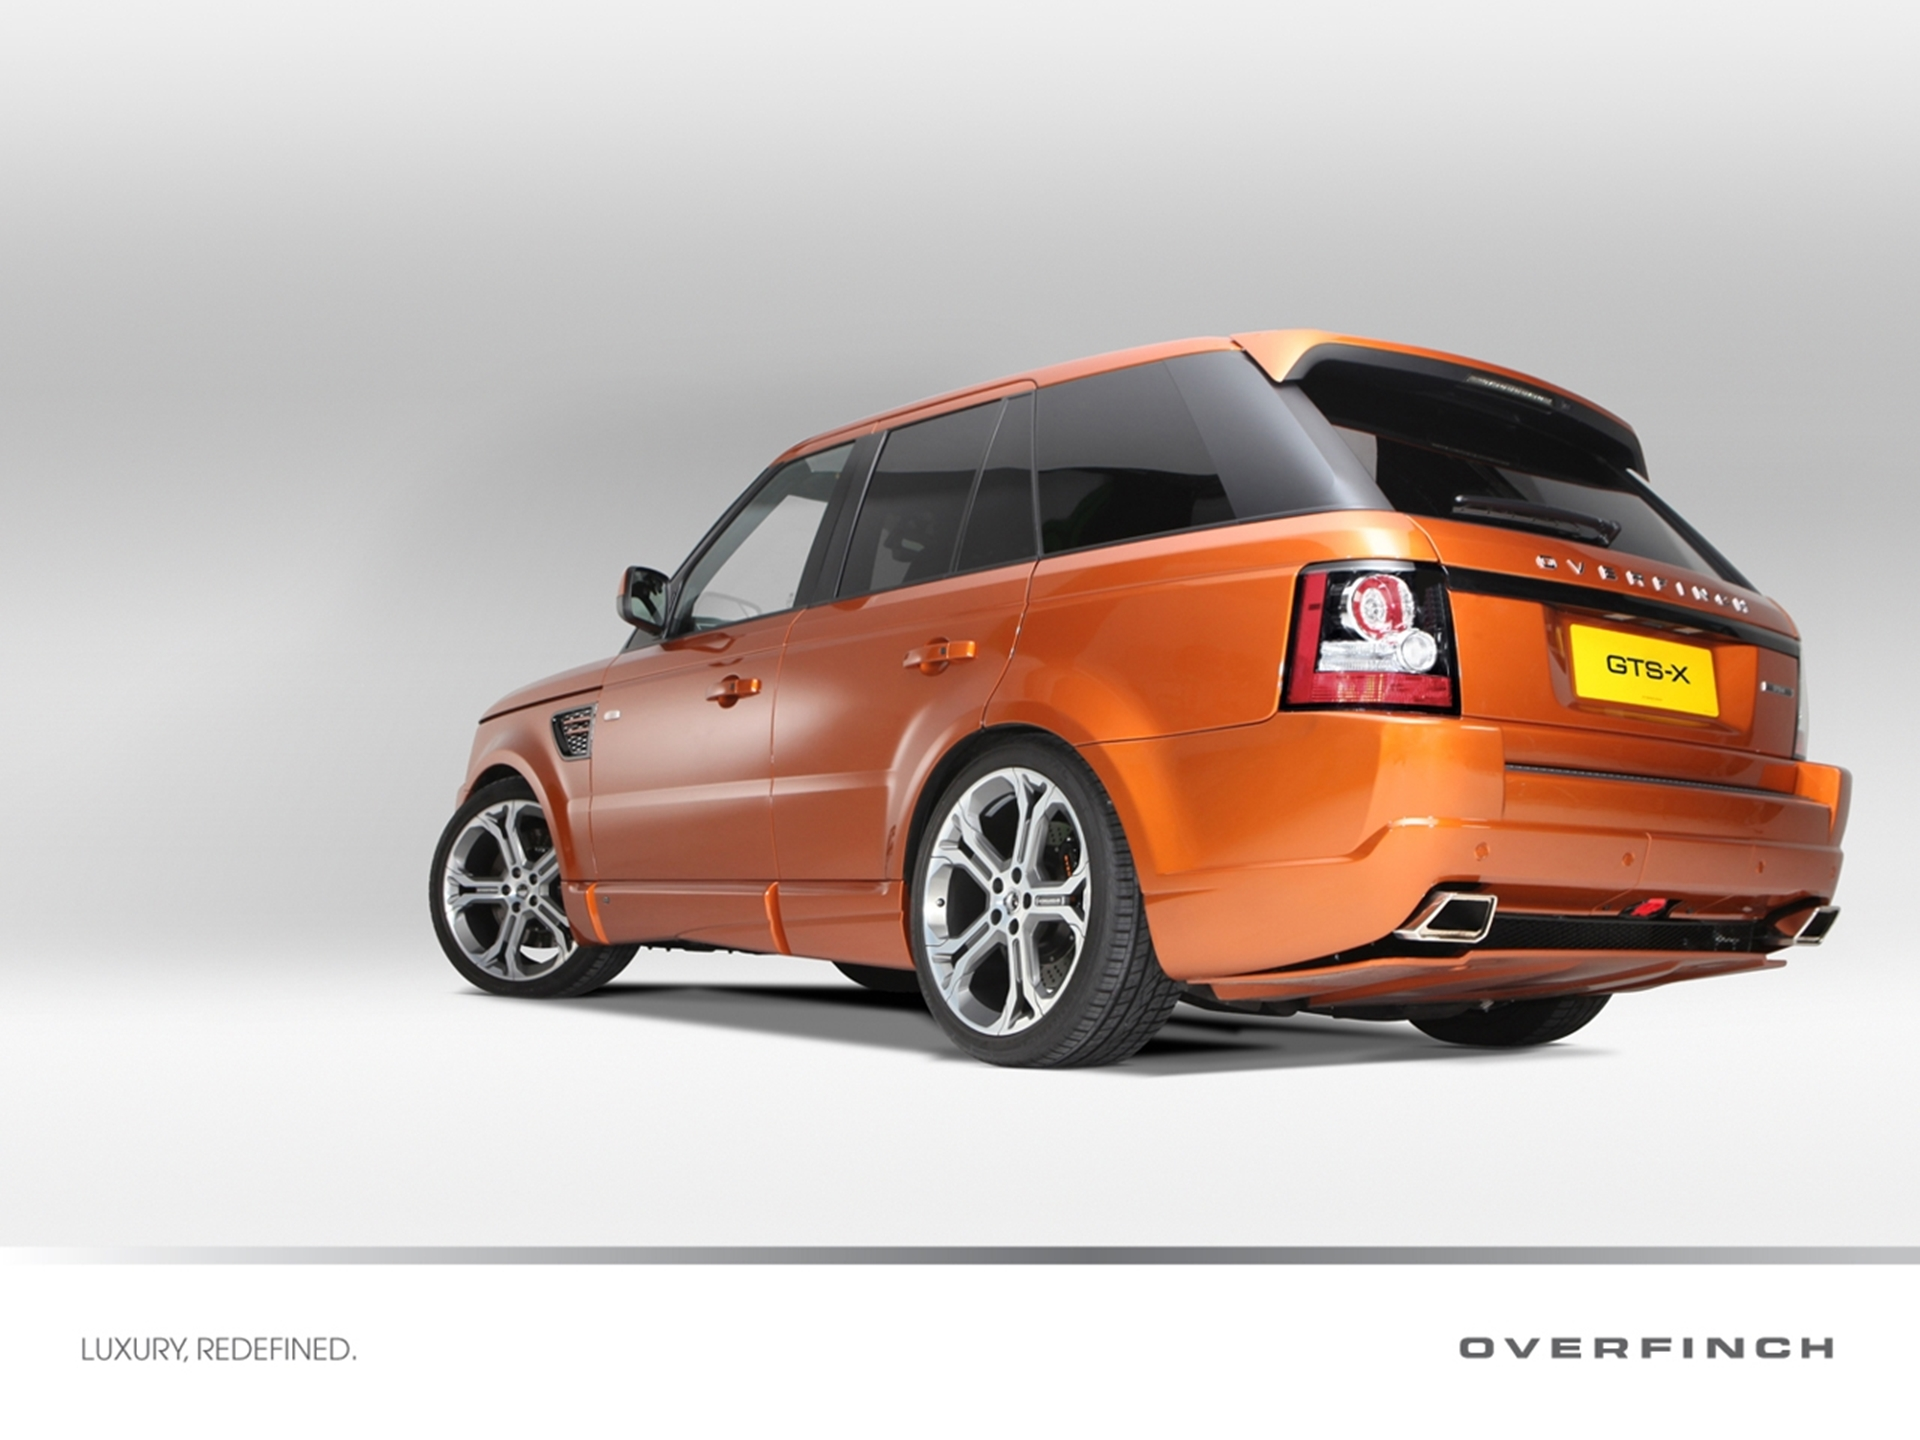 Limited Edition Overfinch Range Rover Sport GTS-X 2012